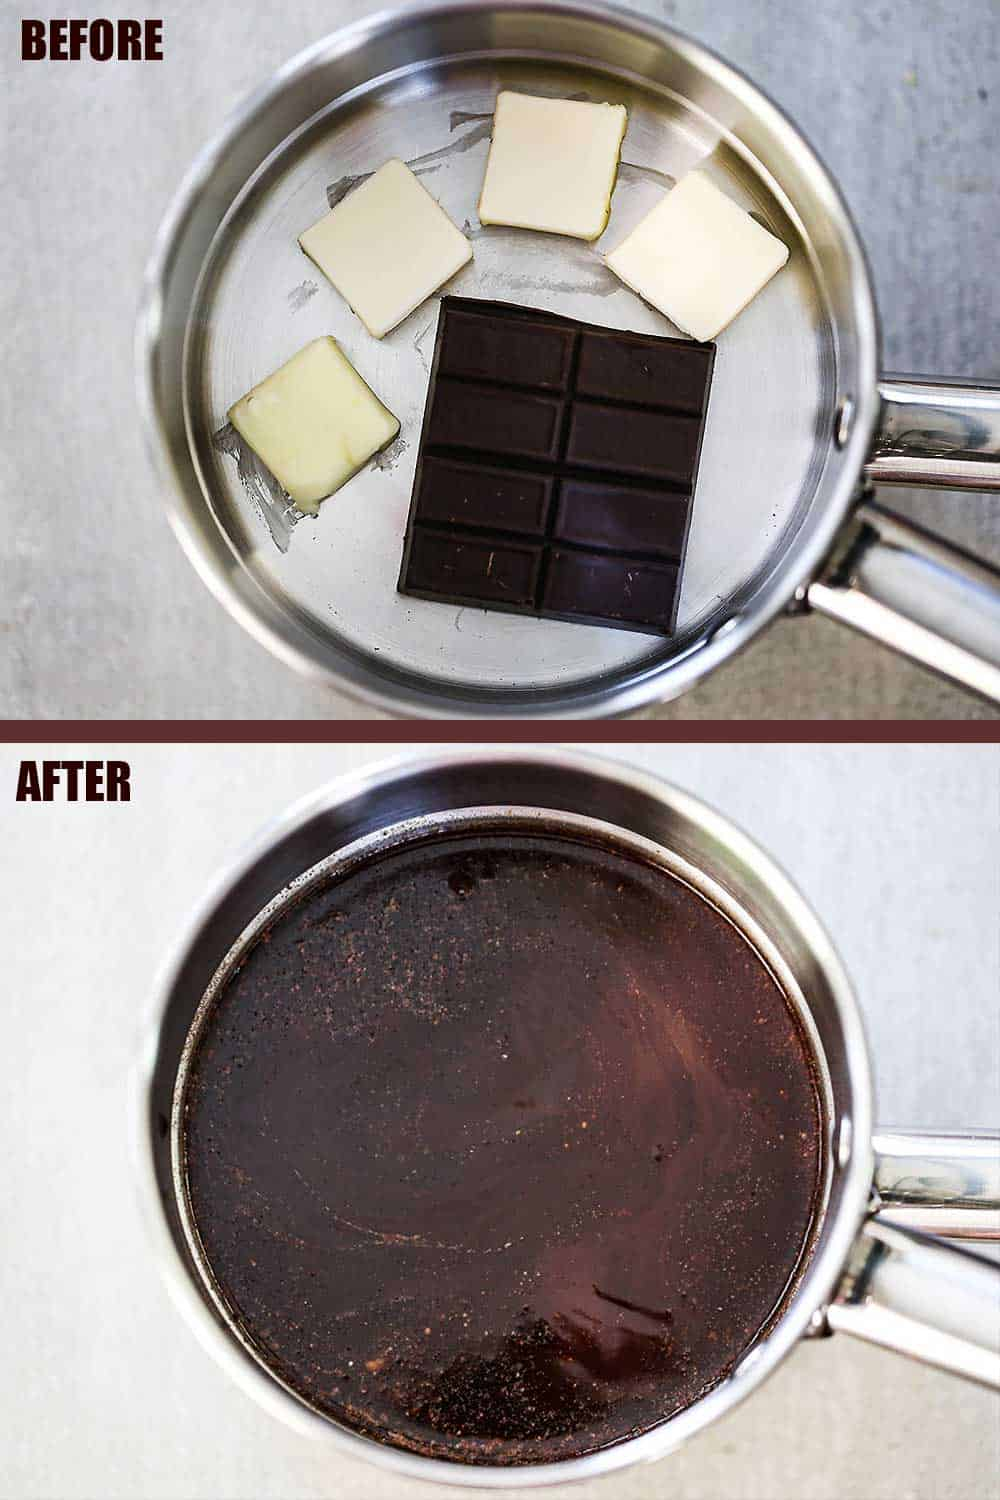 A saucepan filled with 4 pads of solid butter and a piece of solid chocolate, and then the same pan with the butter and chocolate melted and combined.